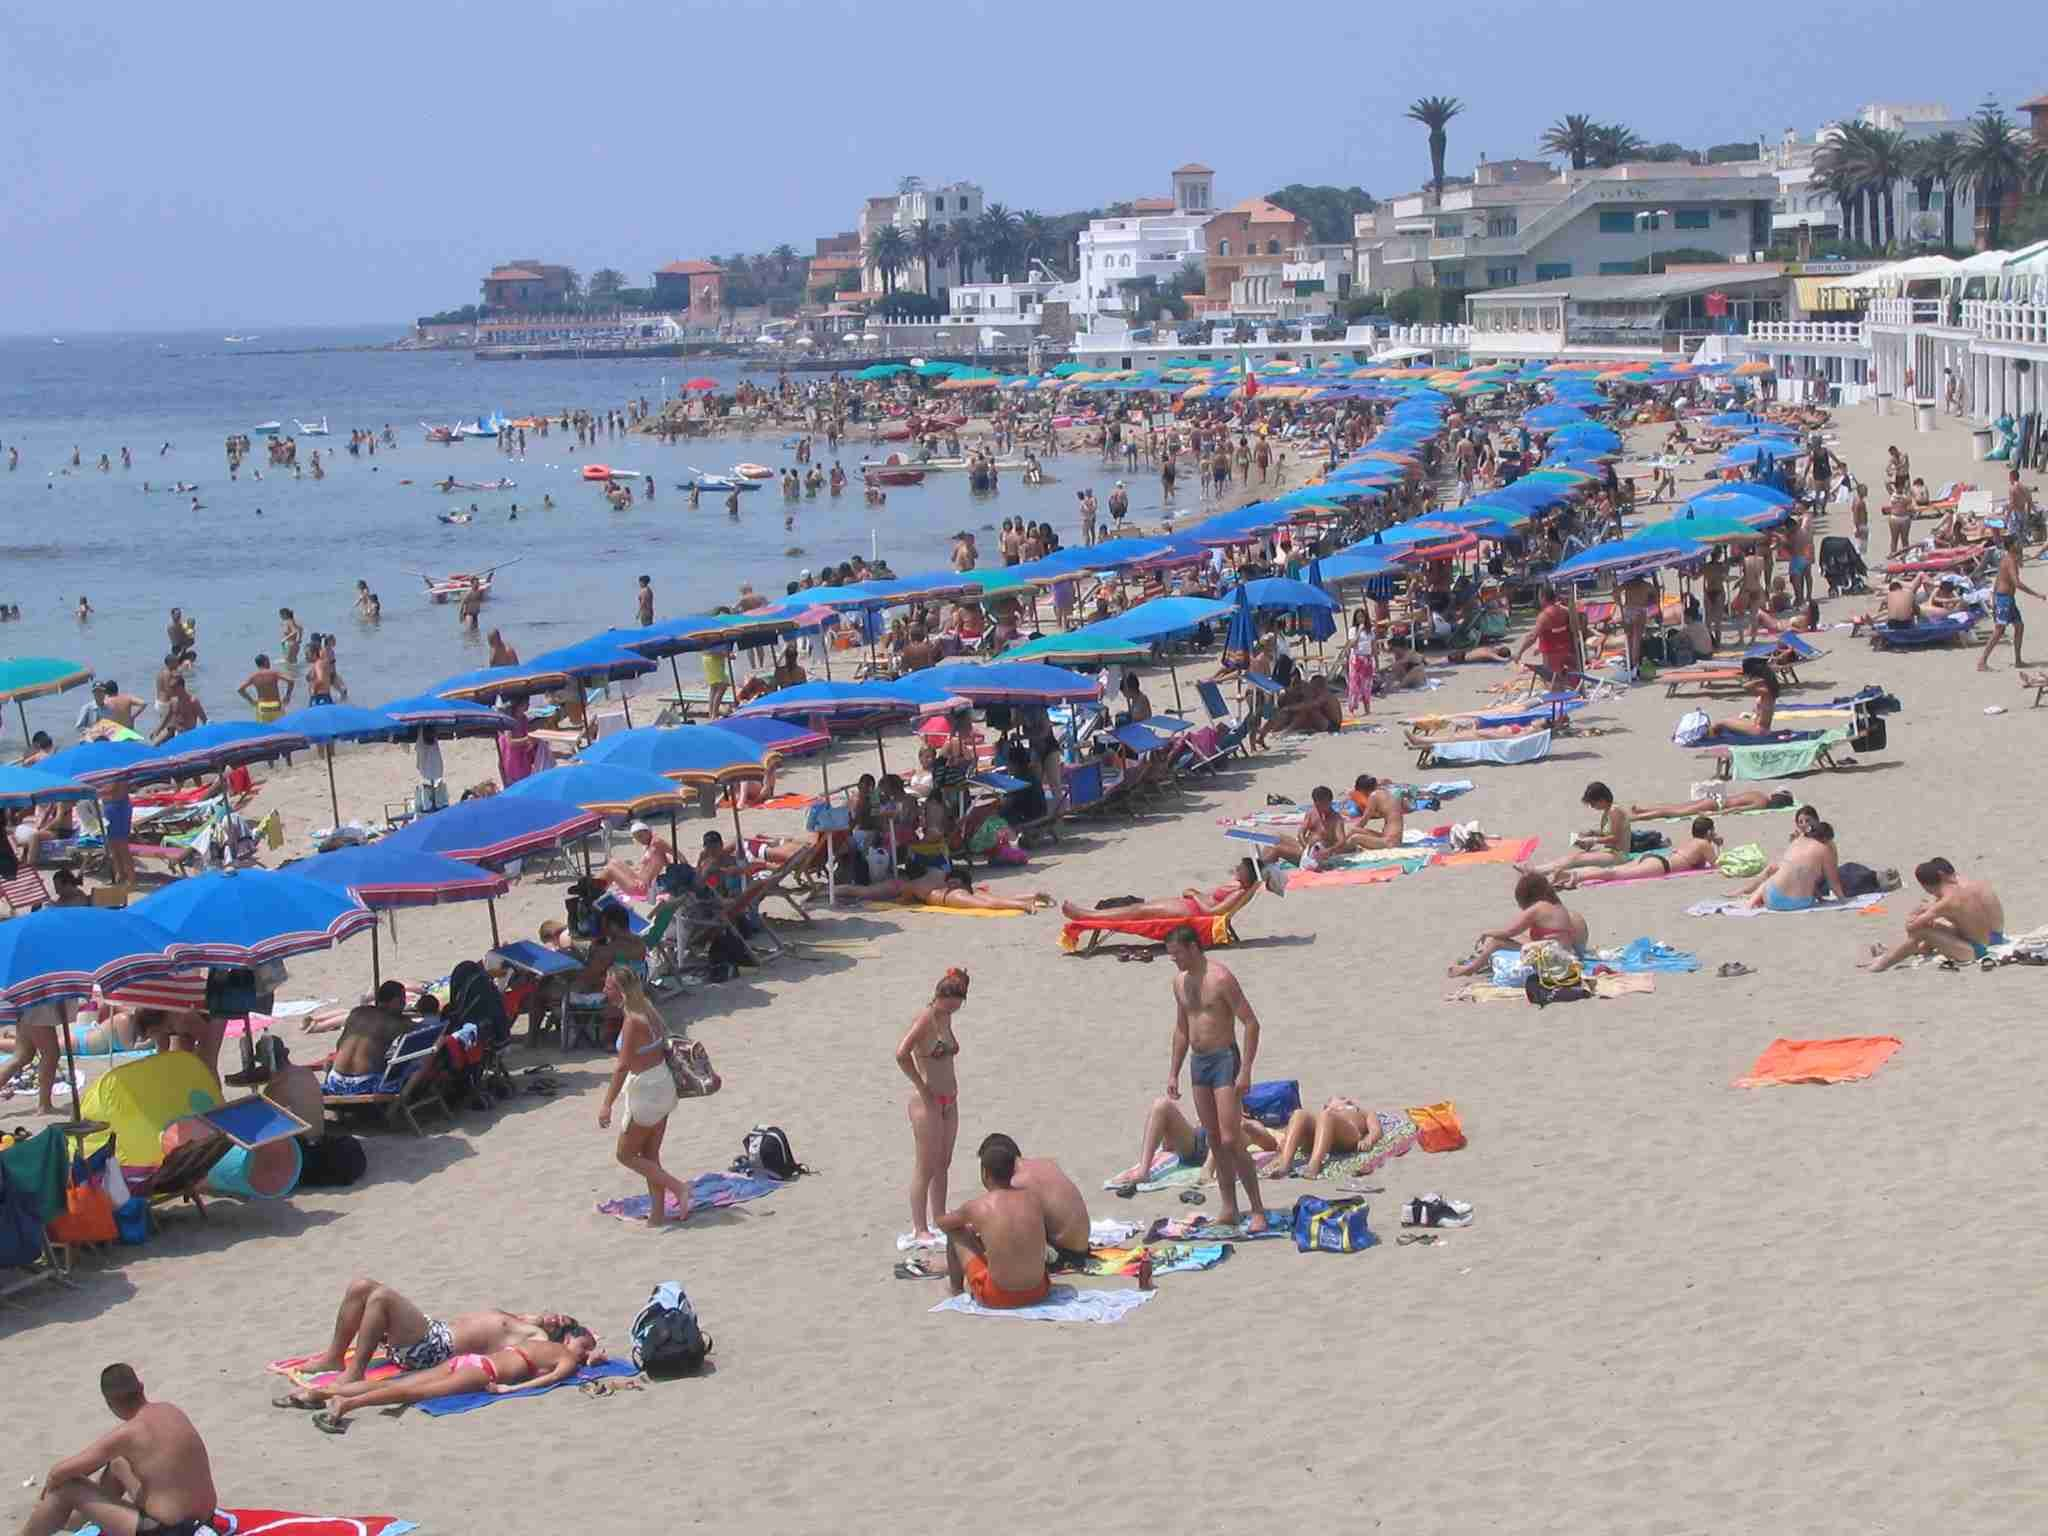 Santa Marinella Italy Oh The Water The Beaches The Boardwalks